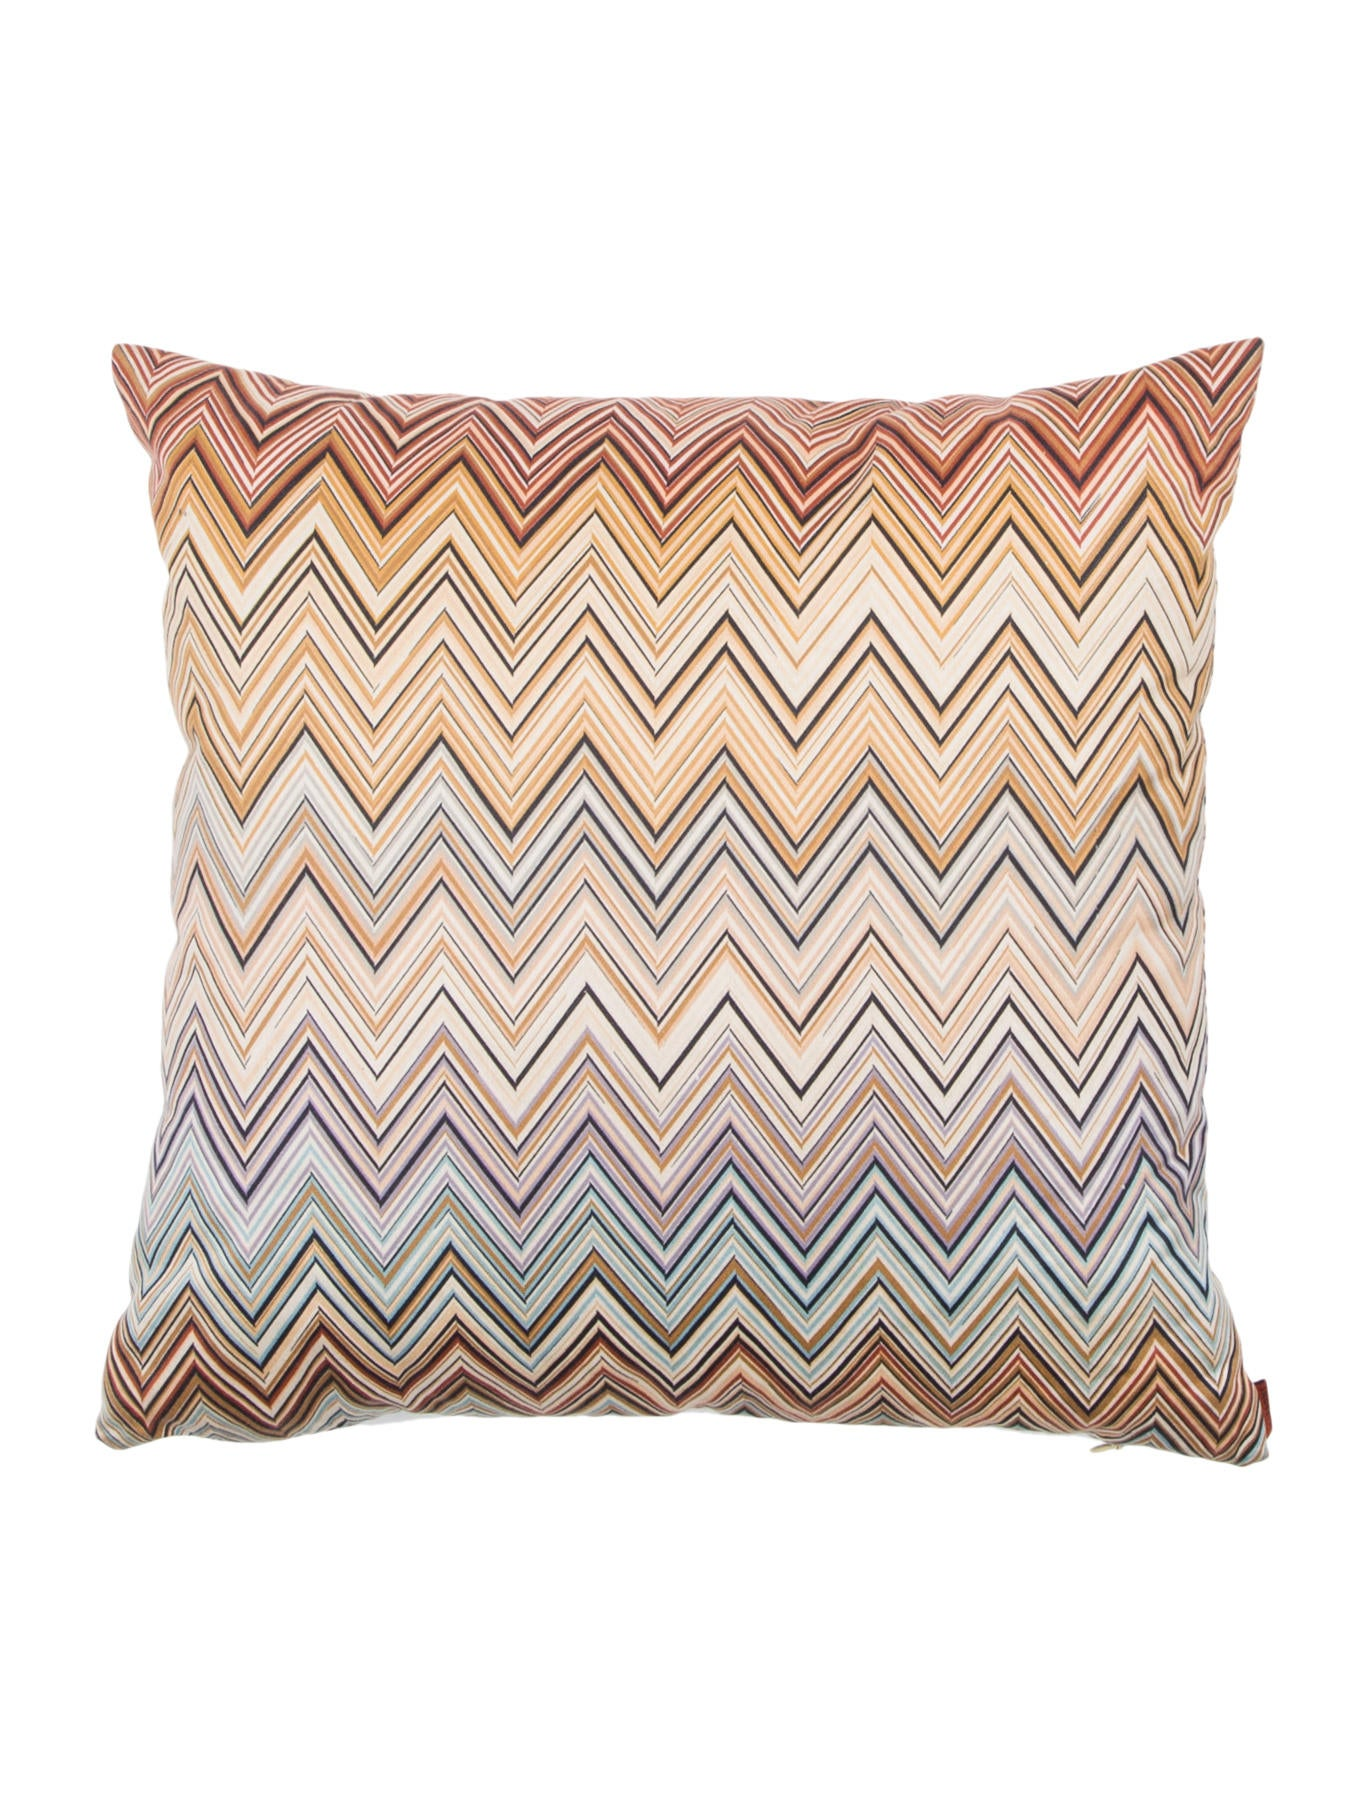 Decorative Pillows Retail : Missoni Jarris Throw Pillow - Pillows And Throws - MIS25693 The RealReal